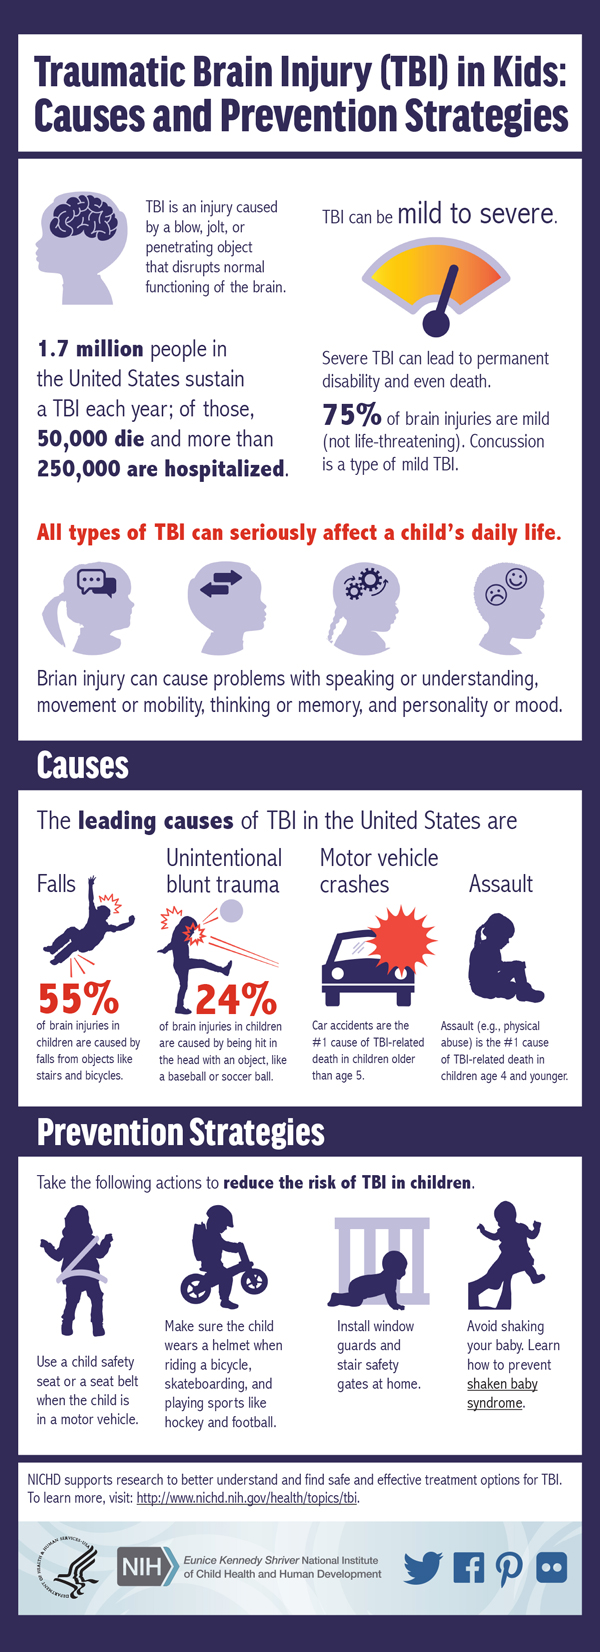 This infographic presents the leading causes of traumatic brain injury (TBI) in children and offers key TBI prevention strategies.